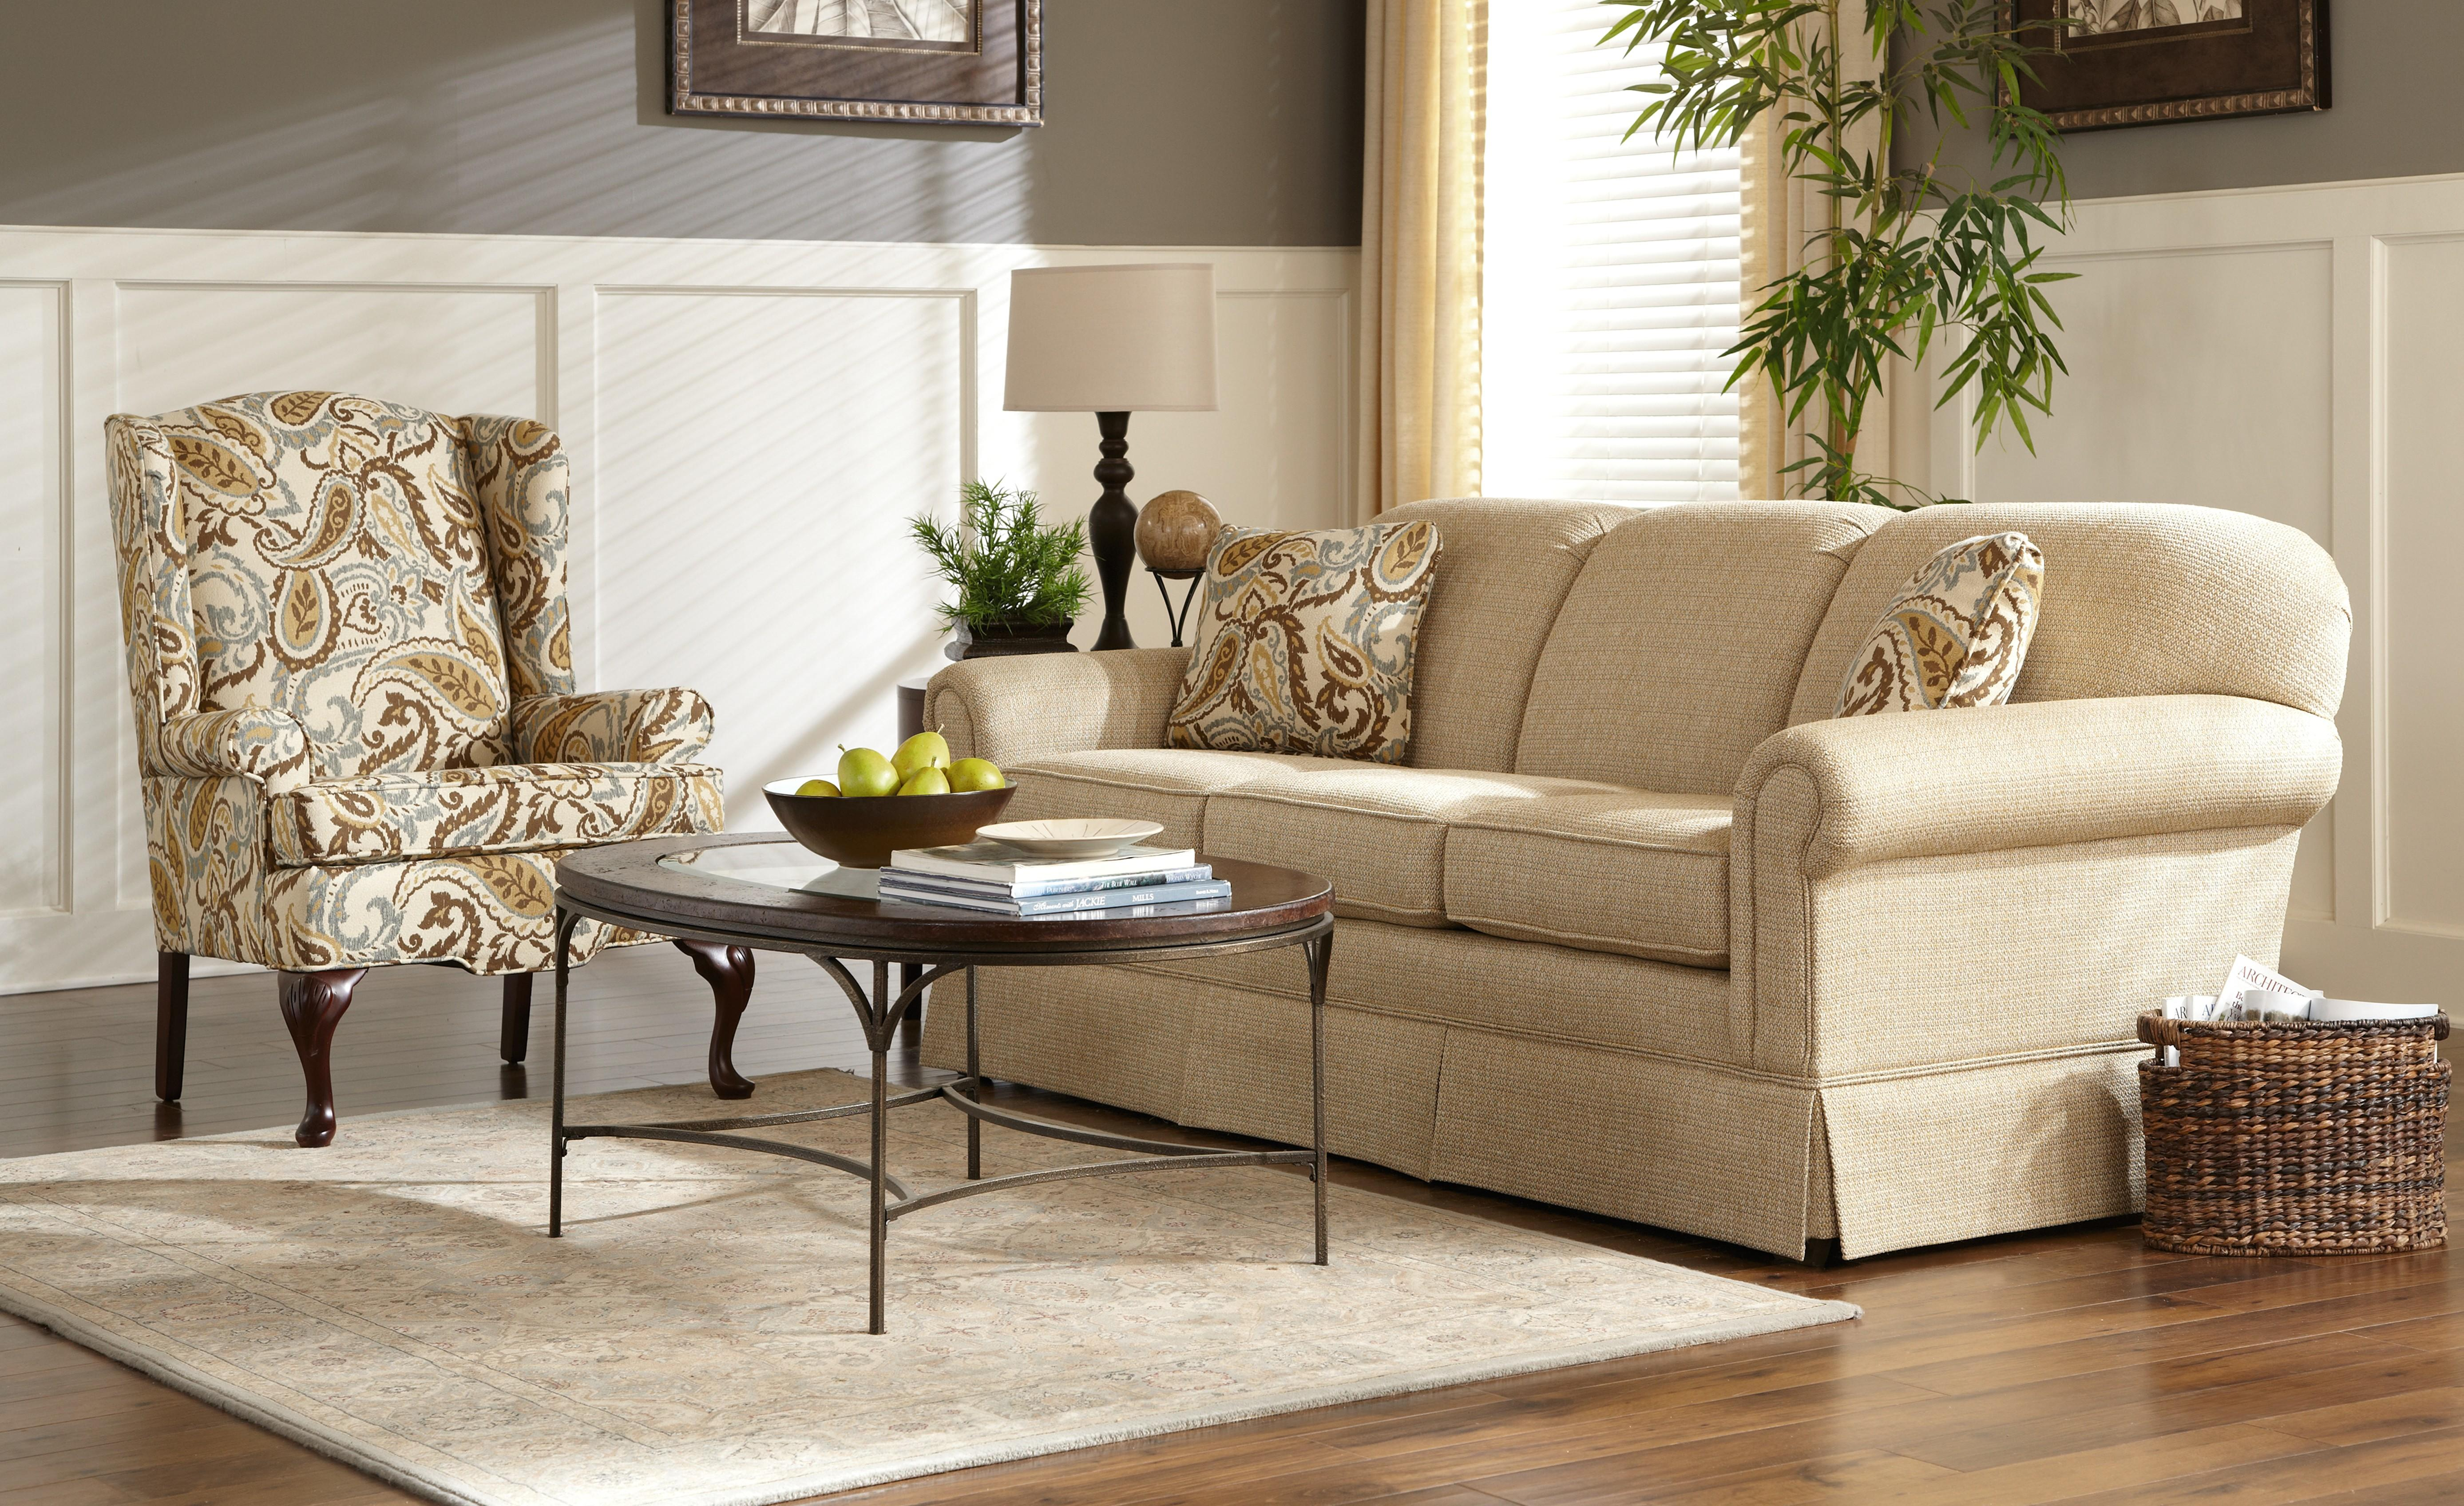 Bejnar s Fine Furniture Shelby Township MI